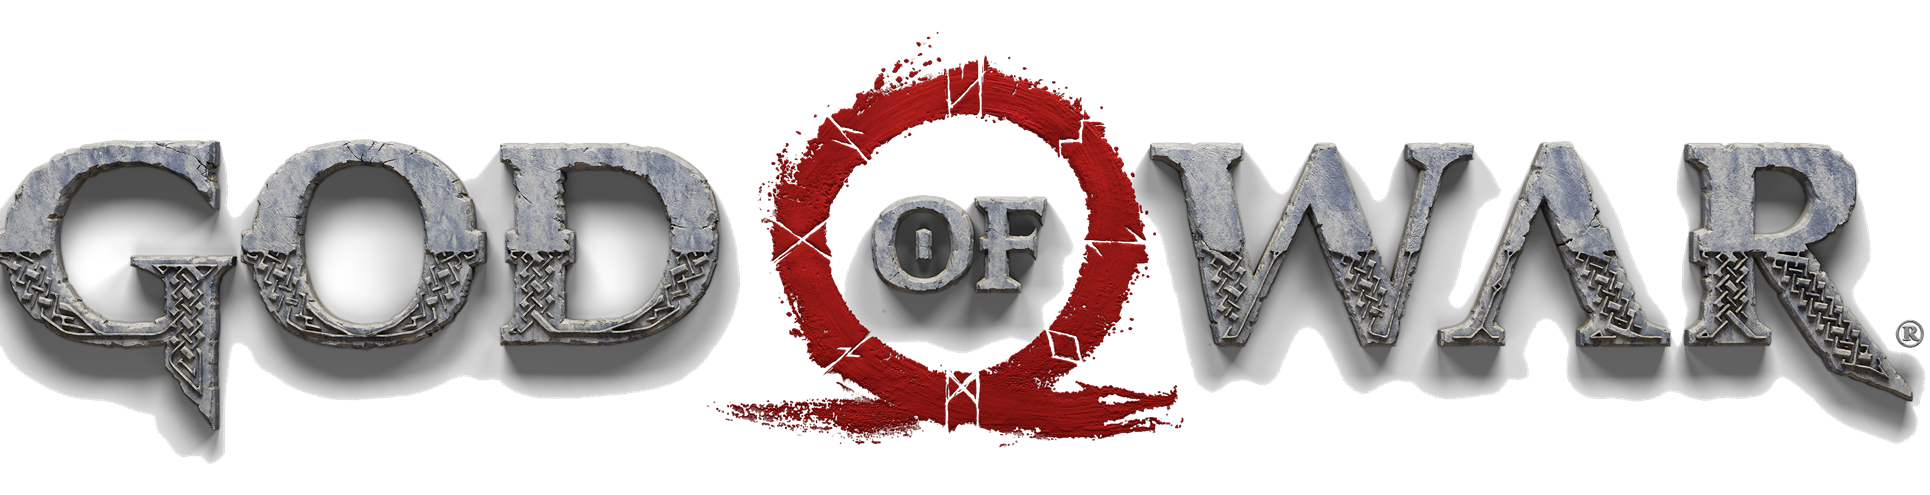 God Of War Logo Image PNG Image